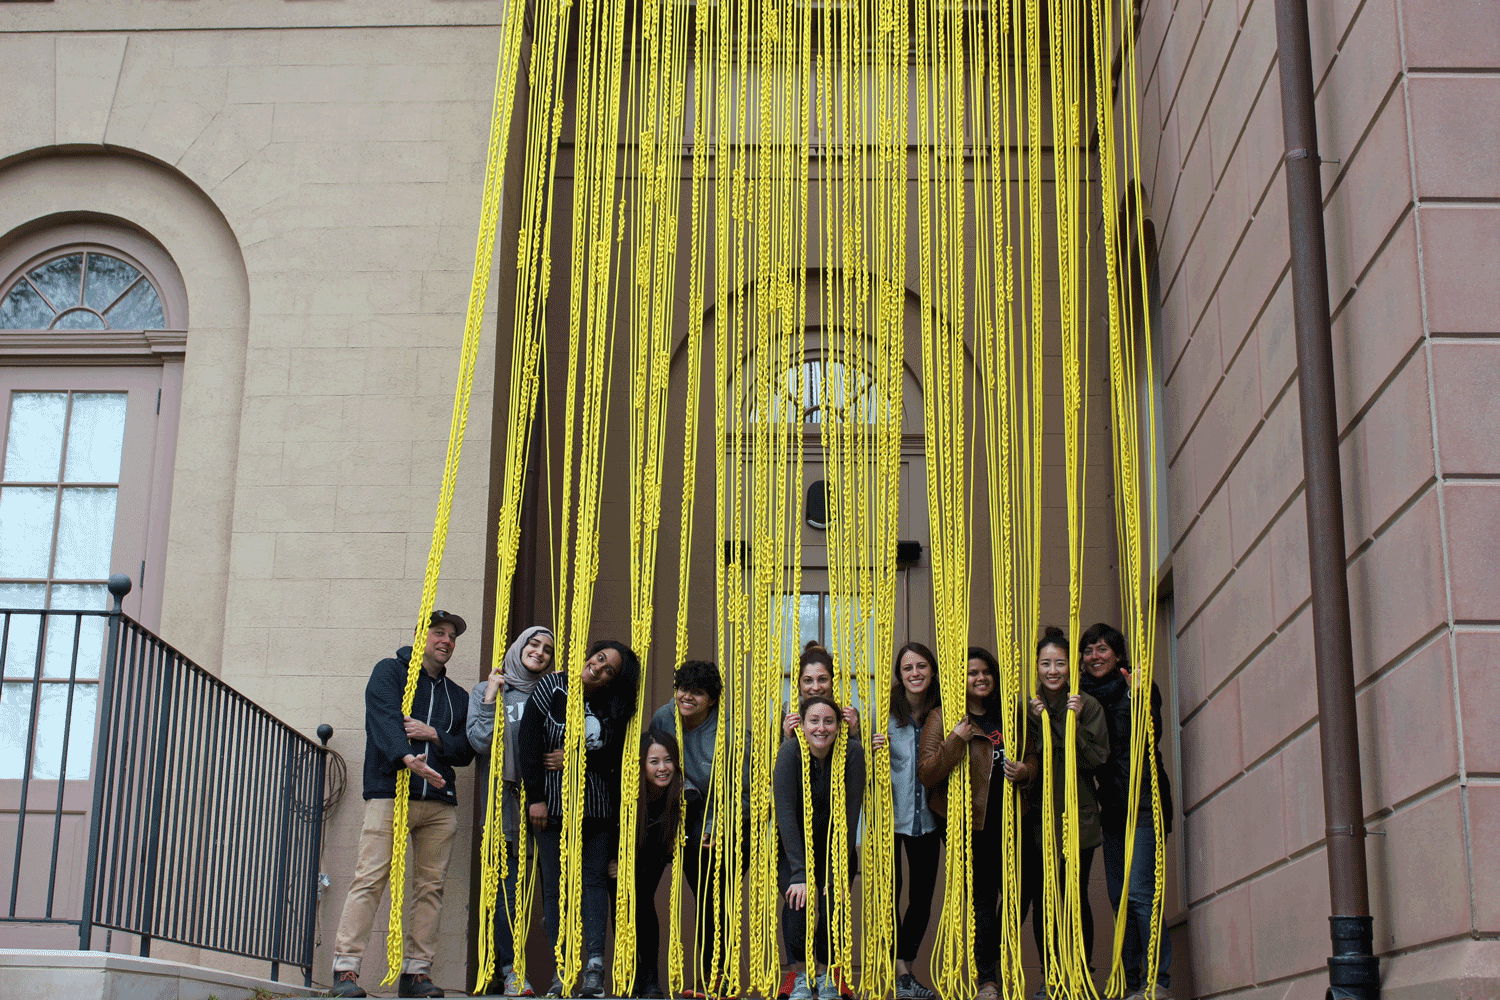 MA 2016  YELLOW ROPE  INSTALLATION  AT THE REDWOOD LIBRARY AND ATHENAEUM